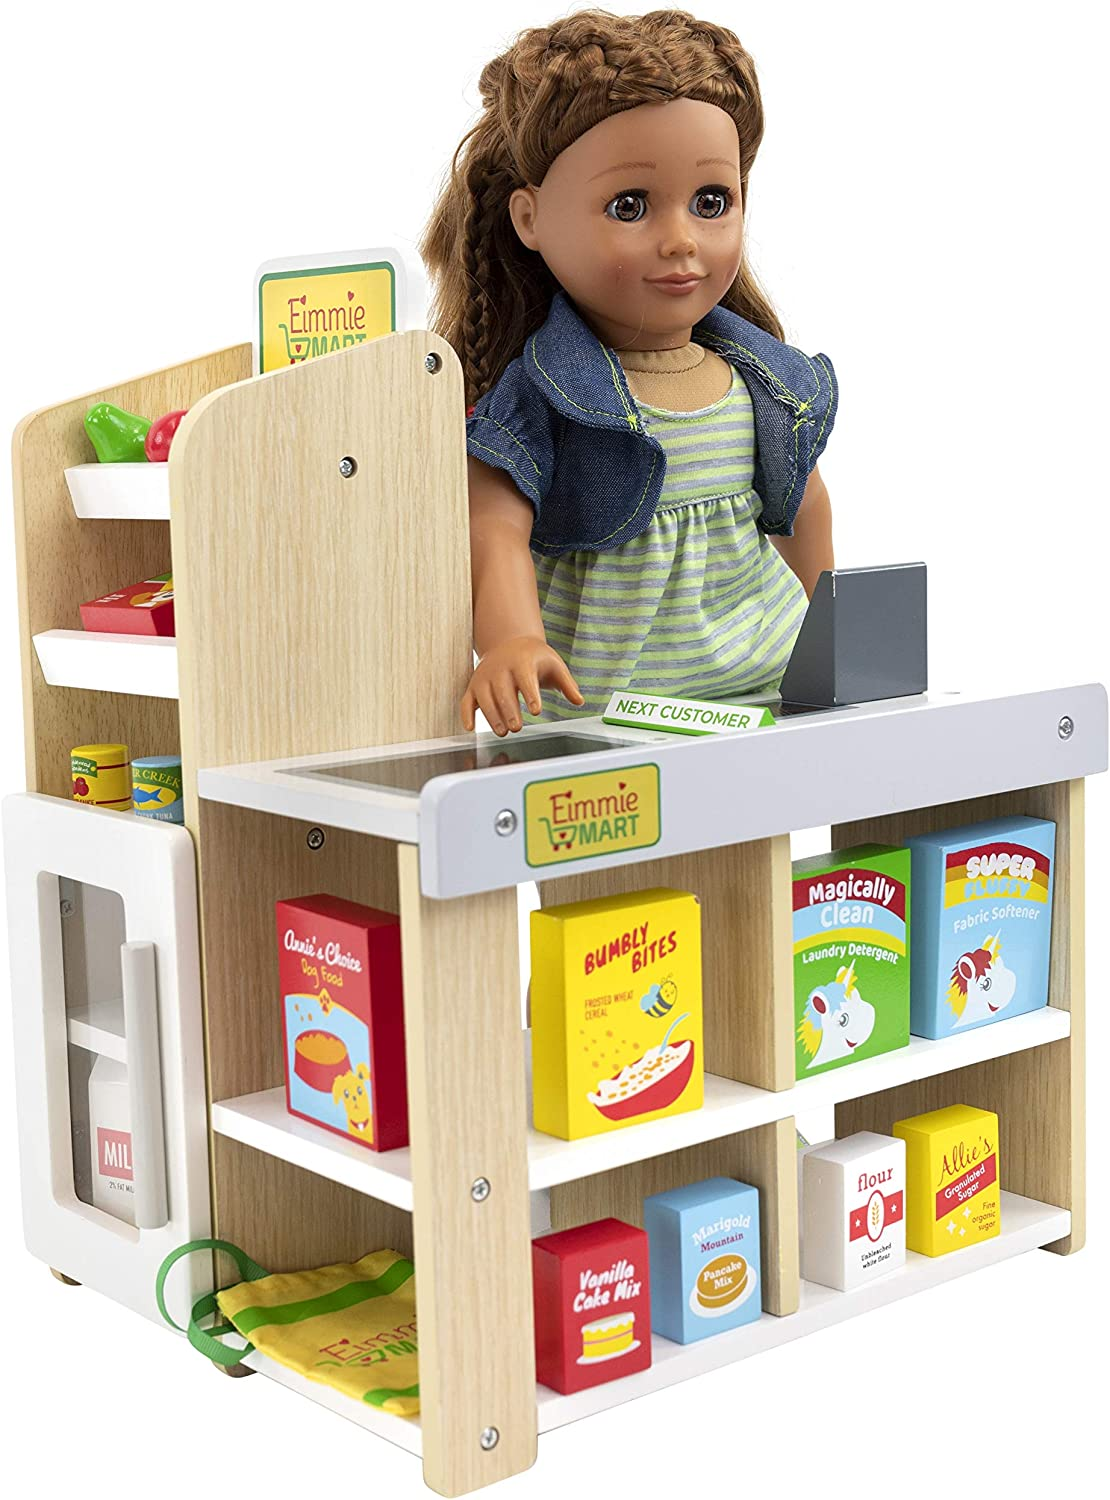 "Playtime by Eimmie Grocery Store Stand Playset - Grocery Store Pretend Play with Play Food & Check Out Stand - Play Store Doll Accessories for 18"" Dolls"